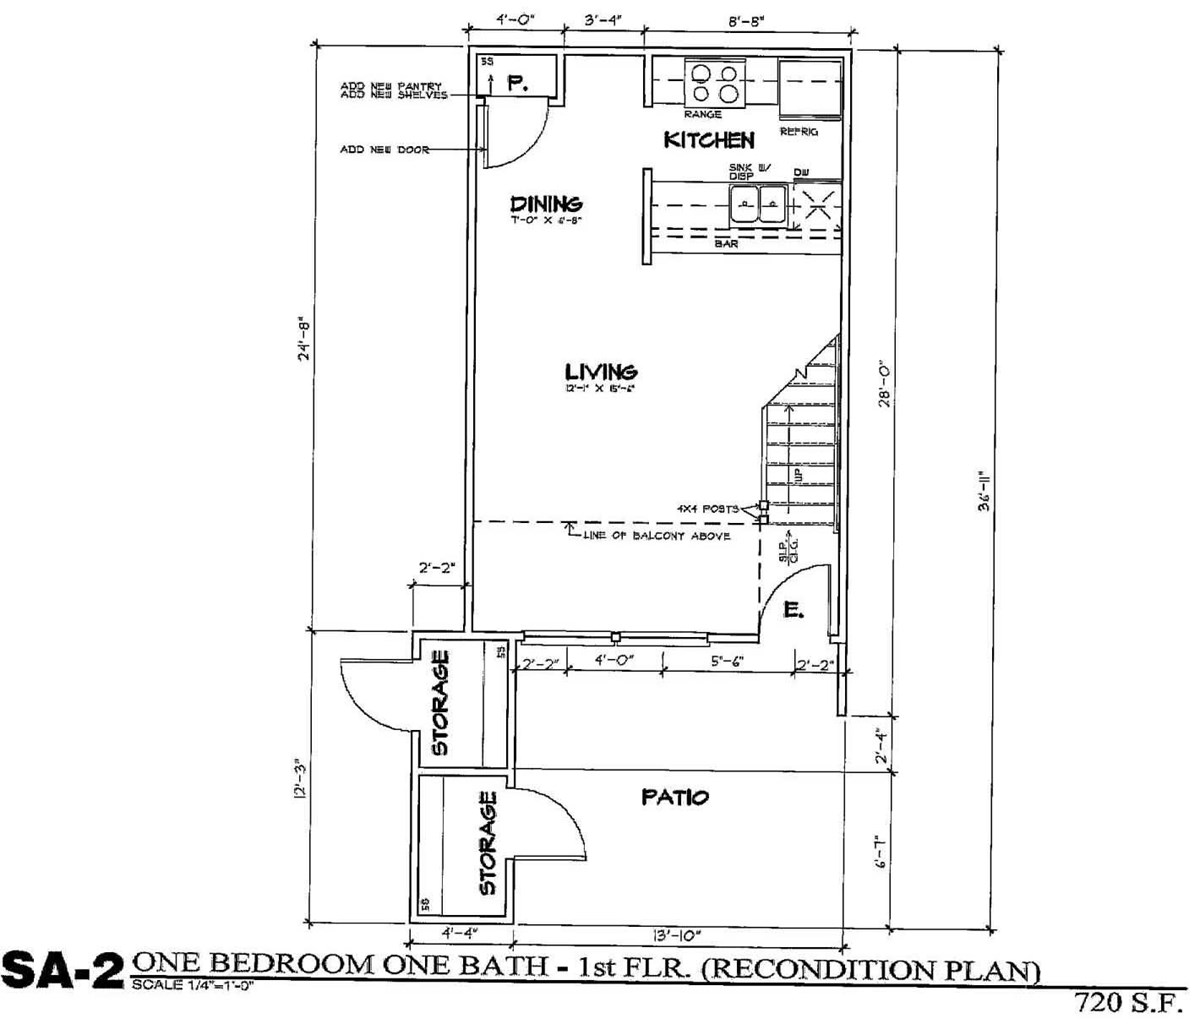 720 sq. ft. SA2/50% floor plan